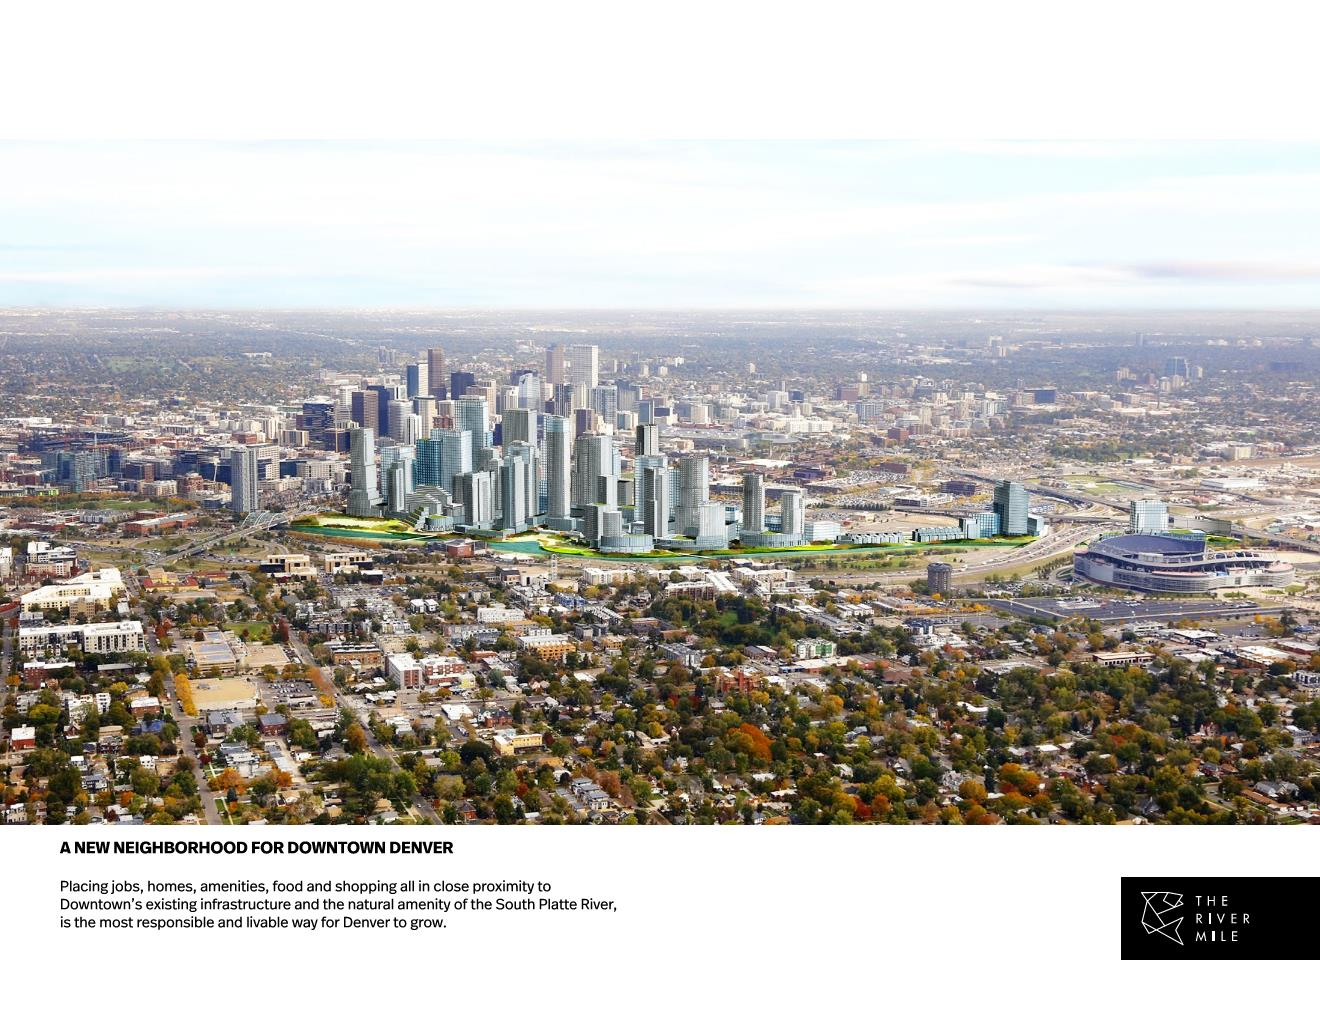 The River Mile - New Neighborhood for Downtown Denver